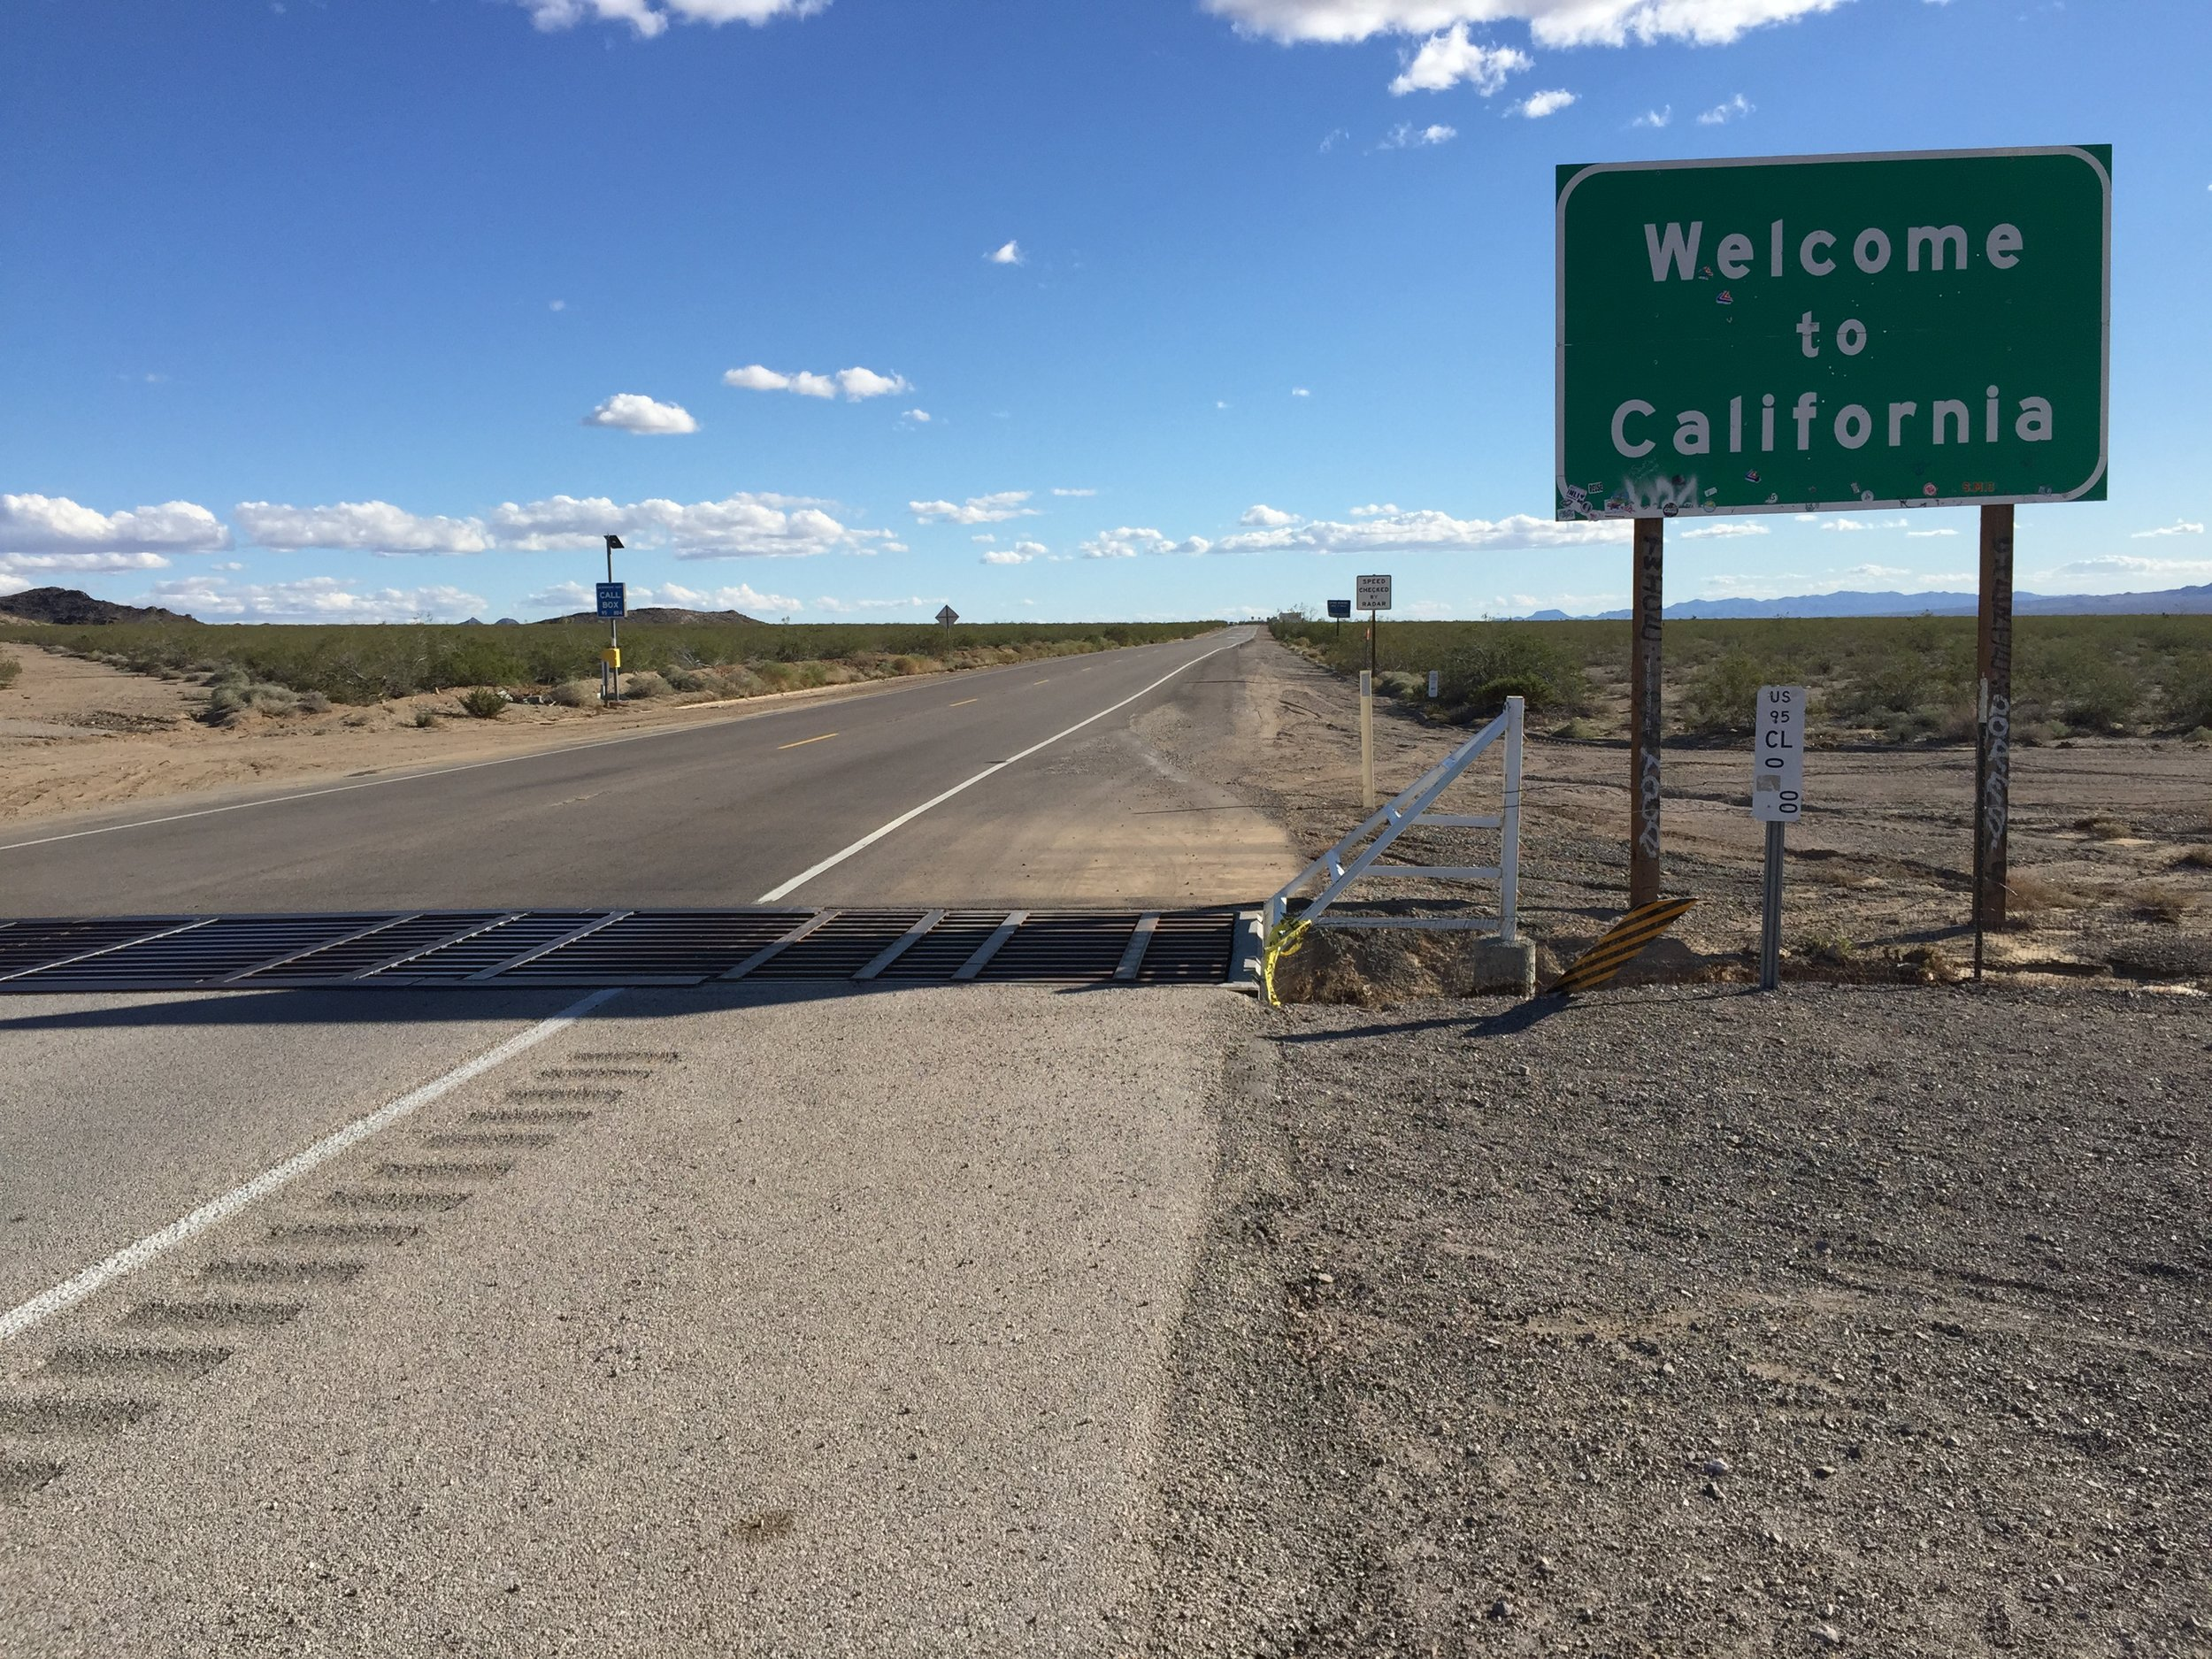 2015-11-03_14_17_59_%22Welcome_to_California%22_sign_along_southbound_U.S._Route_95_entering_San_Bernardino_County,_California_from_Clark_County,_Nevada.jpg